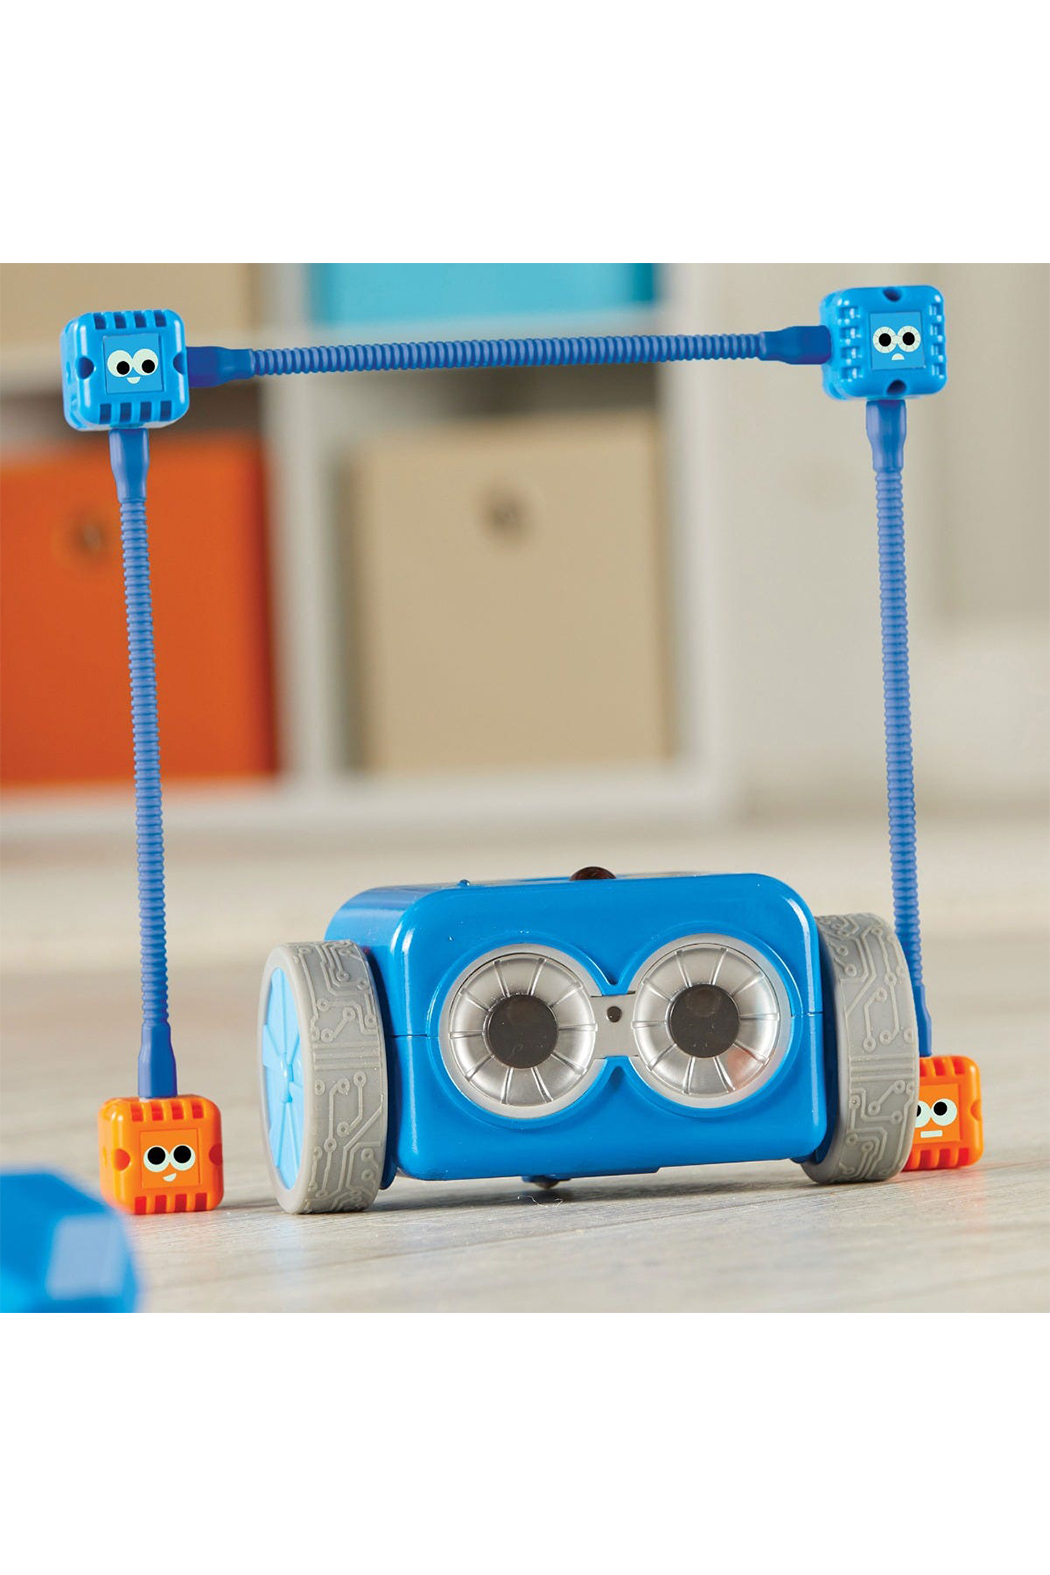 Learning Resources Botley 2.0: The Coding Robot Activity Set - Back Cropped Image